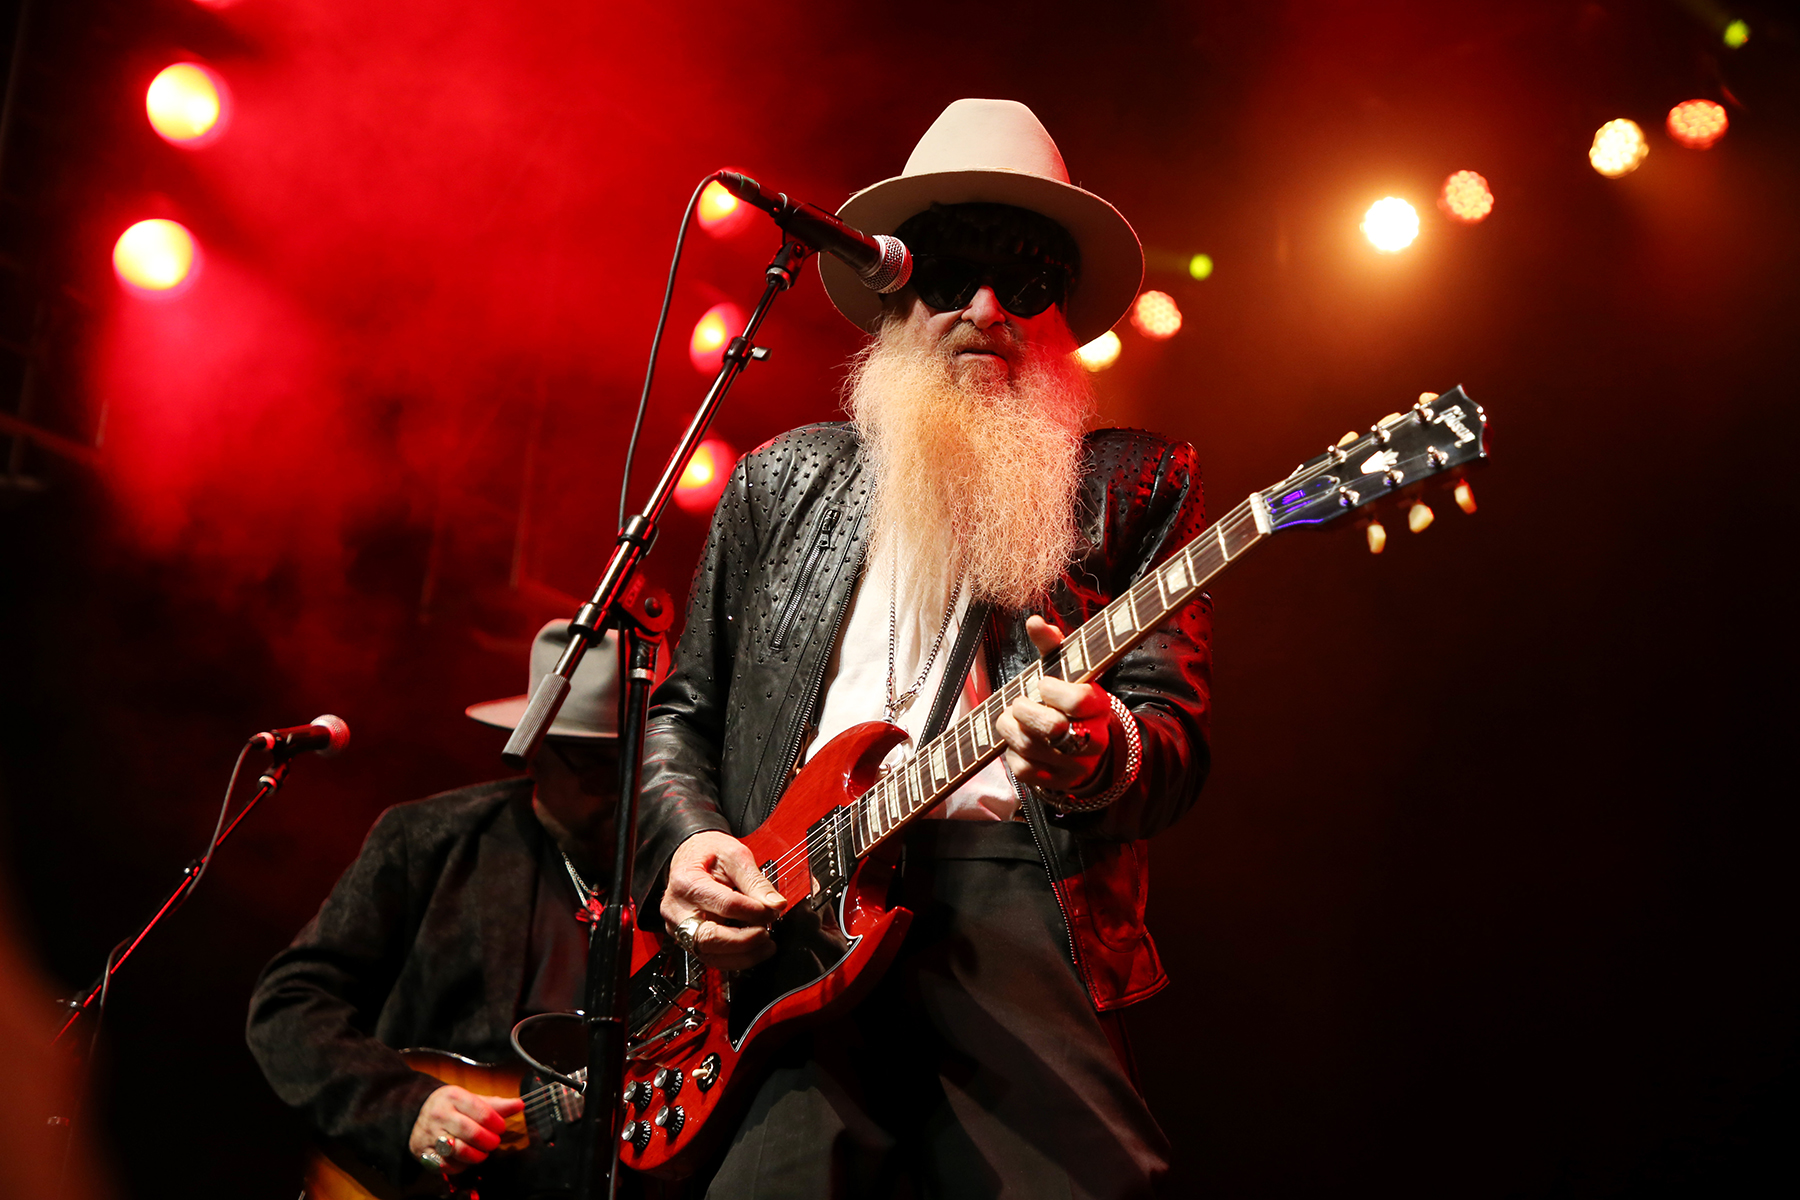 Billy Gibbons Previews New Solo Album With Surf-Rock Song 'West Coast Junkie'